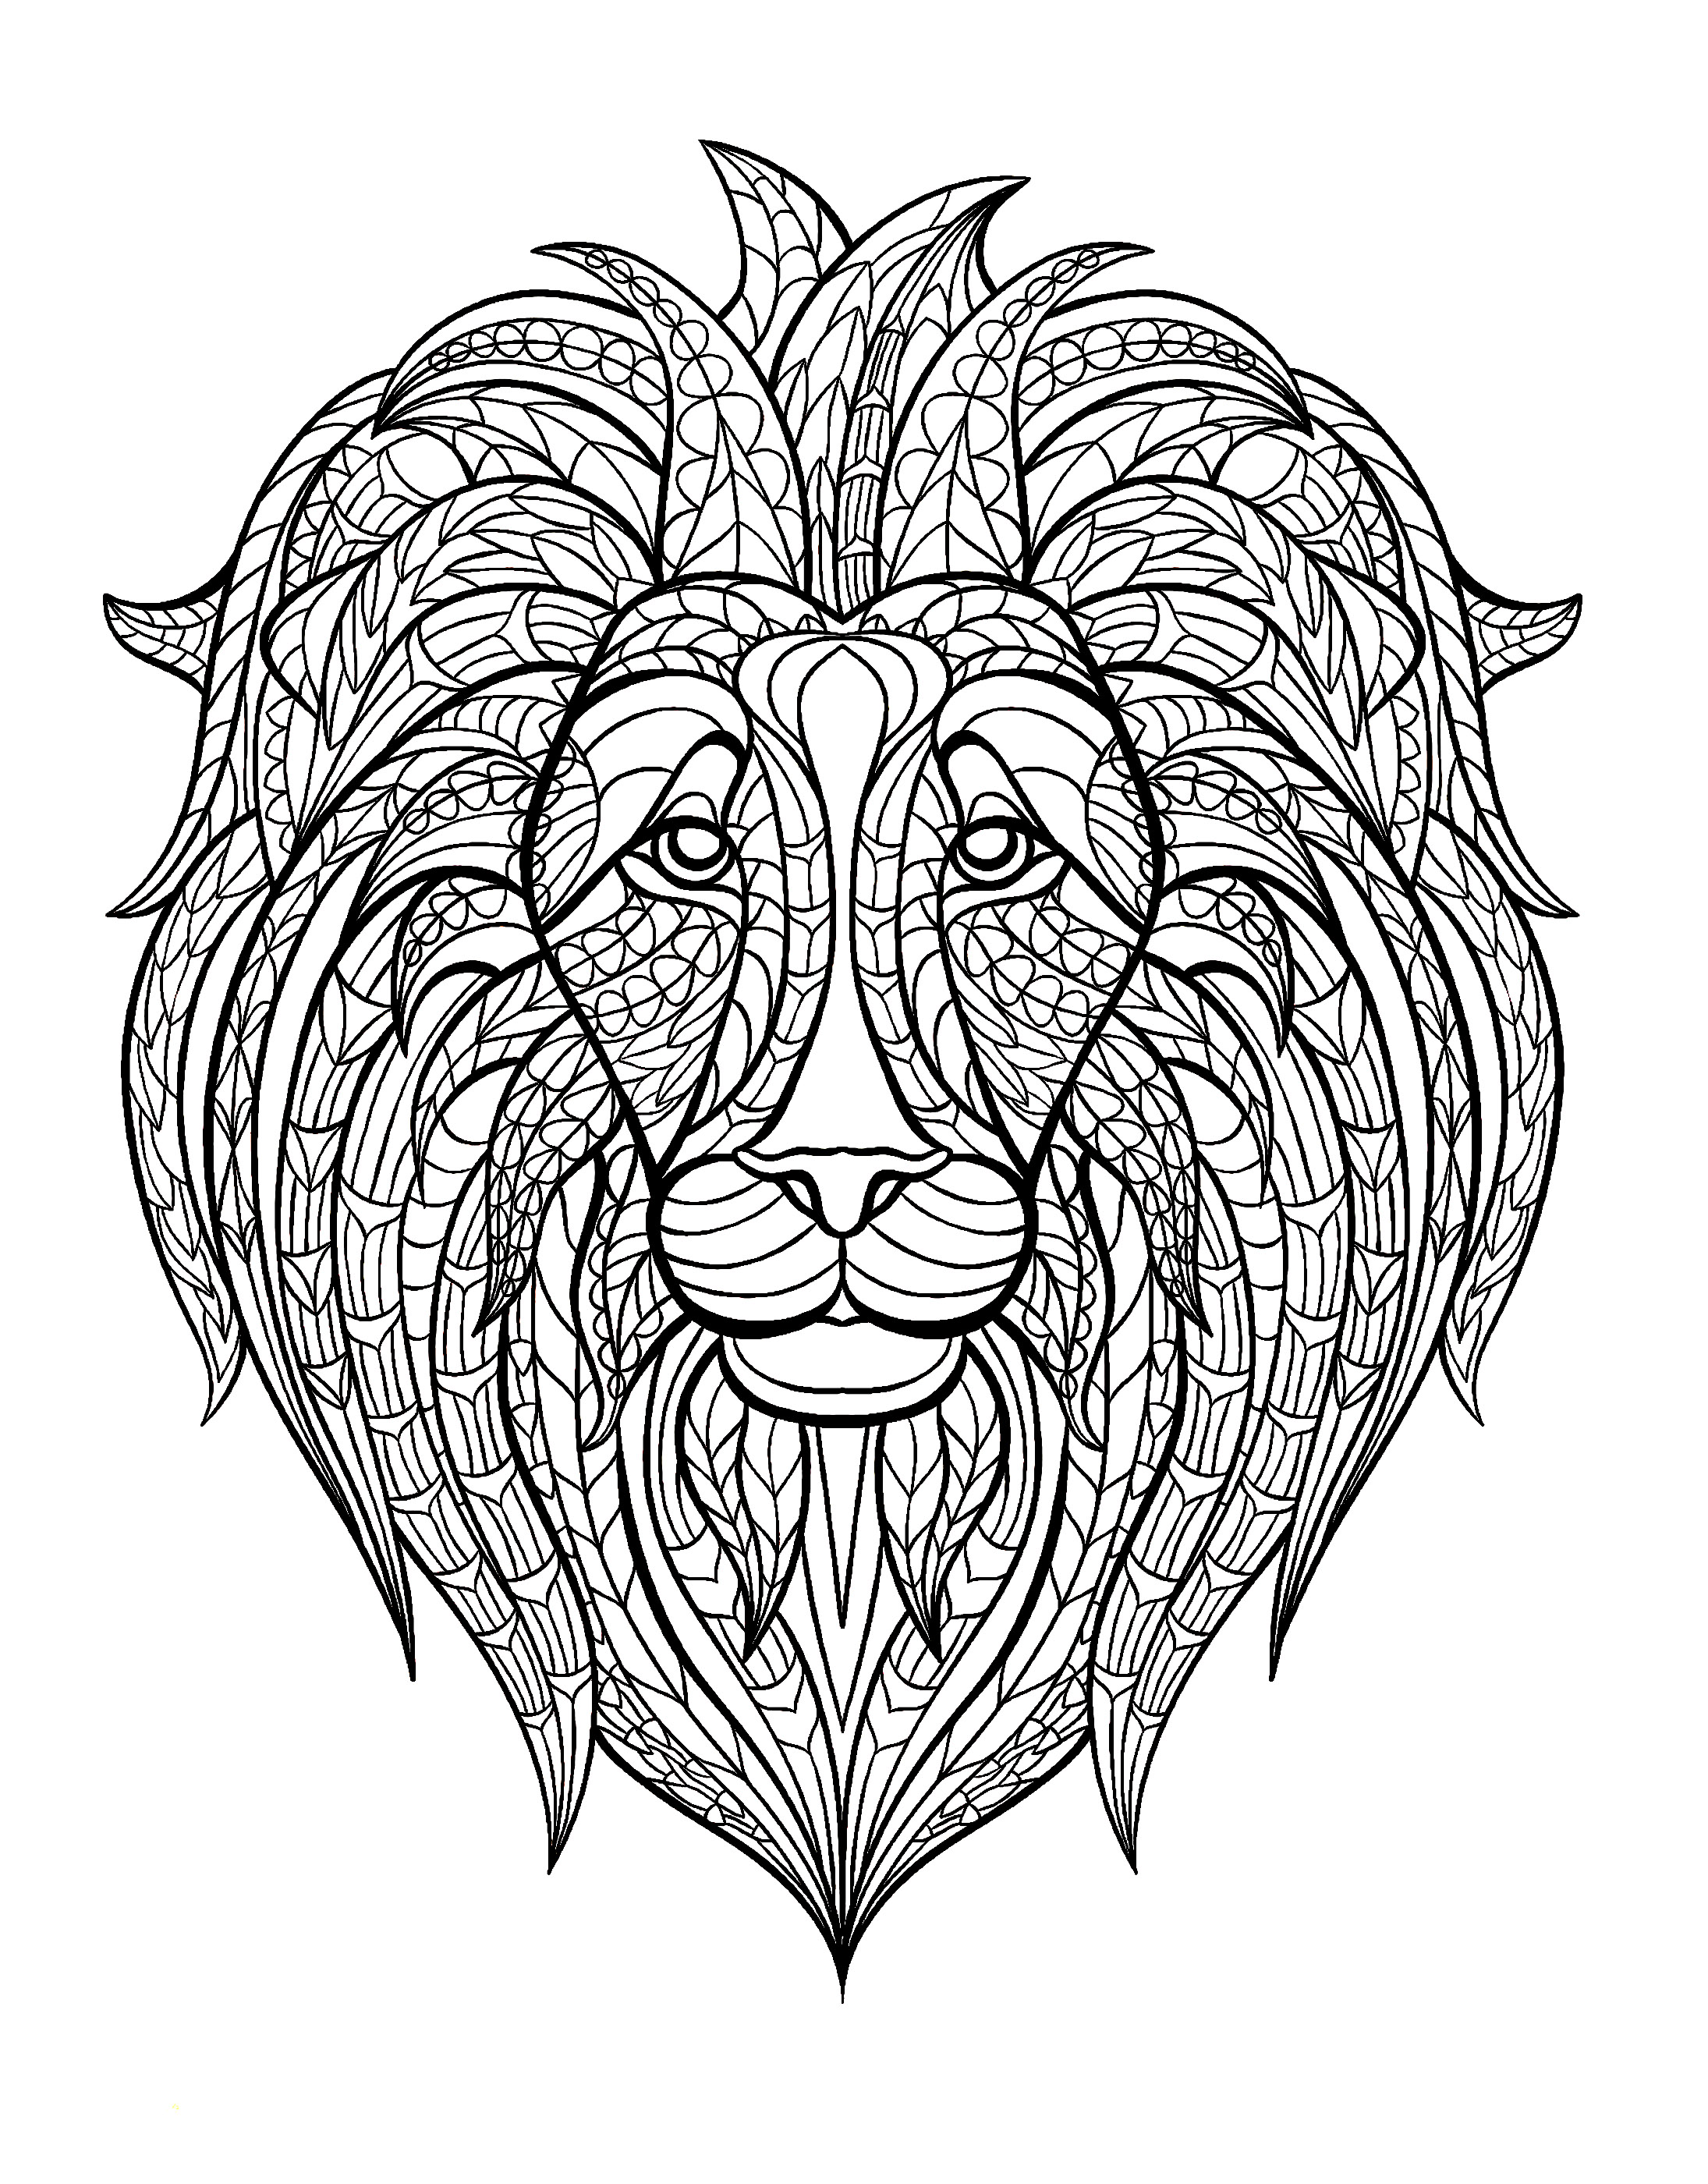 lion coloring pages for adults Lion head   Lions Adult Coloring Pages lion coloring pages for adults